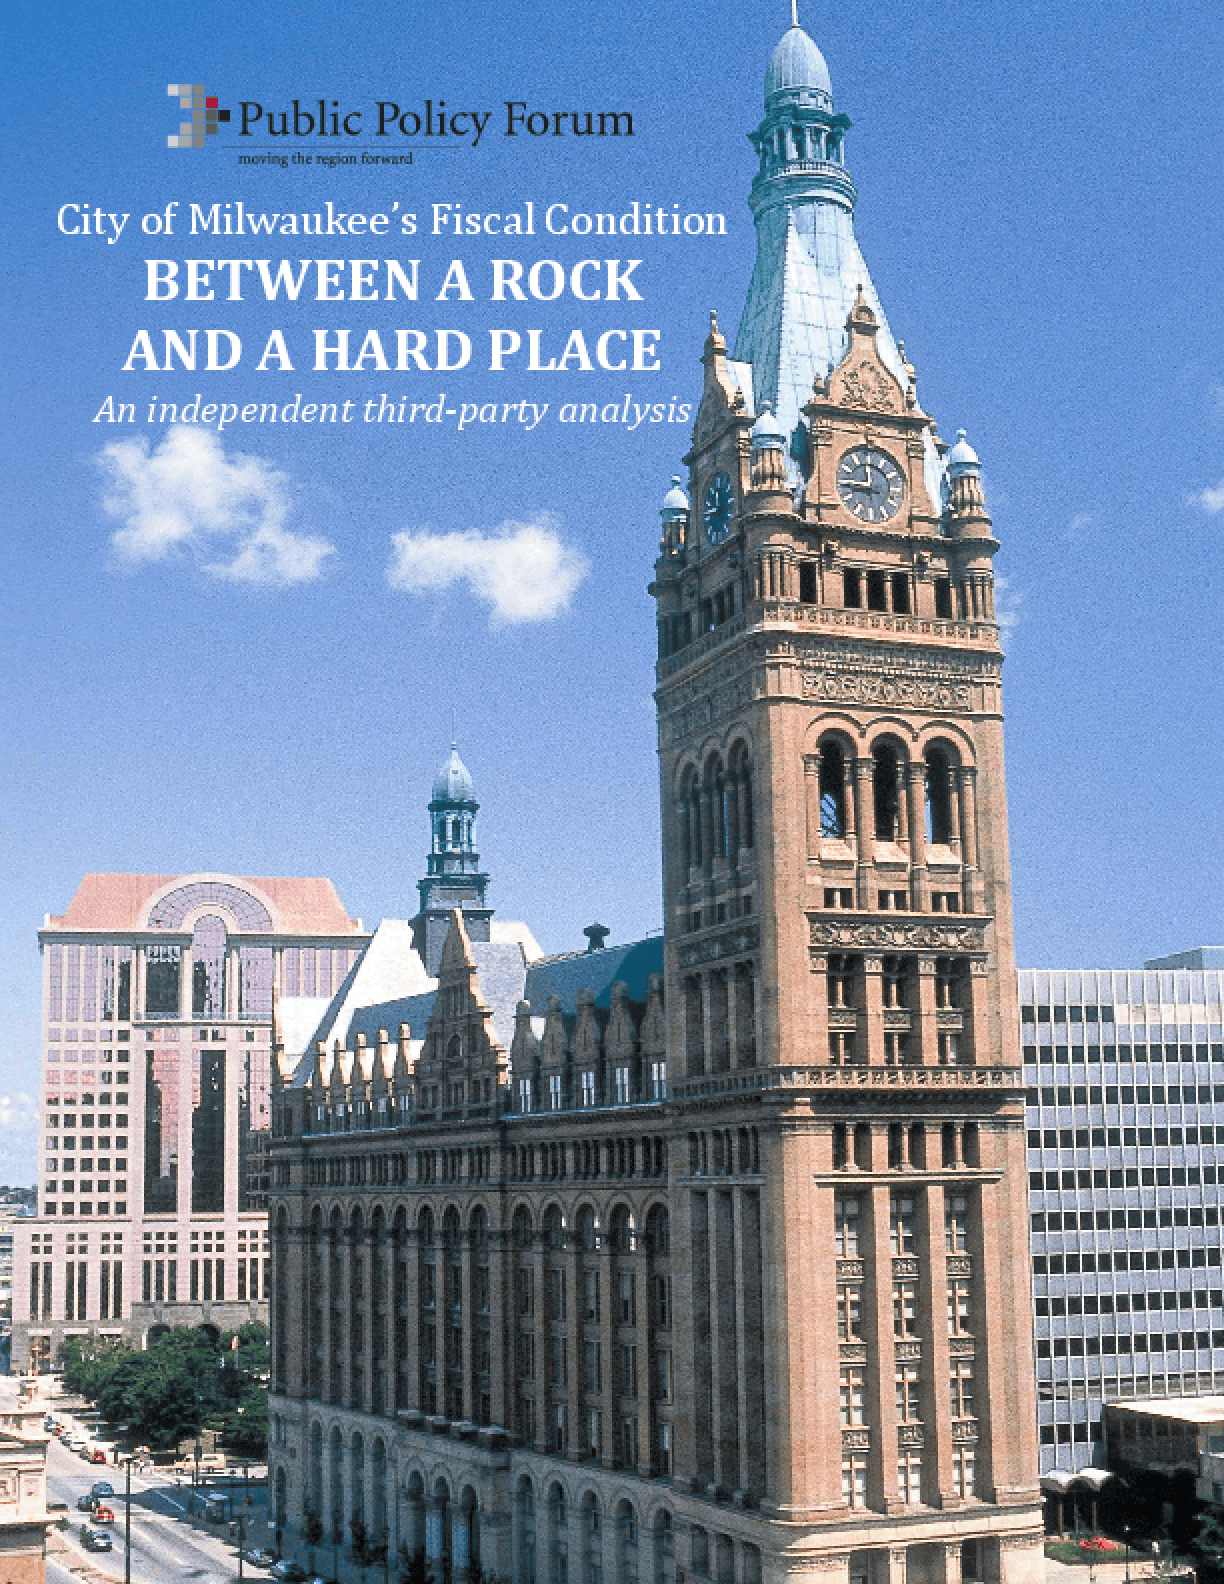 City of Milwaukee's Fiscal Condition: Between a Rock and a Hard Place